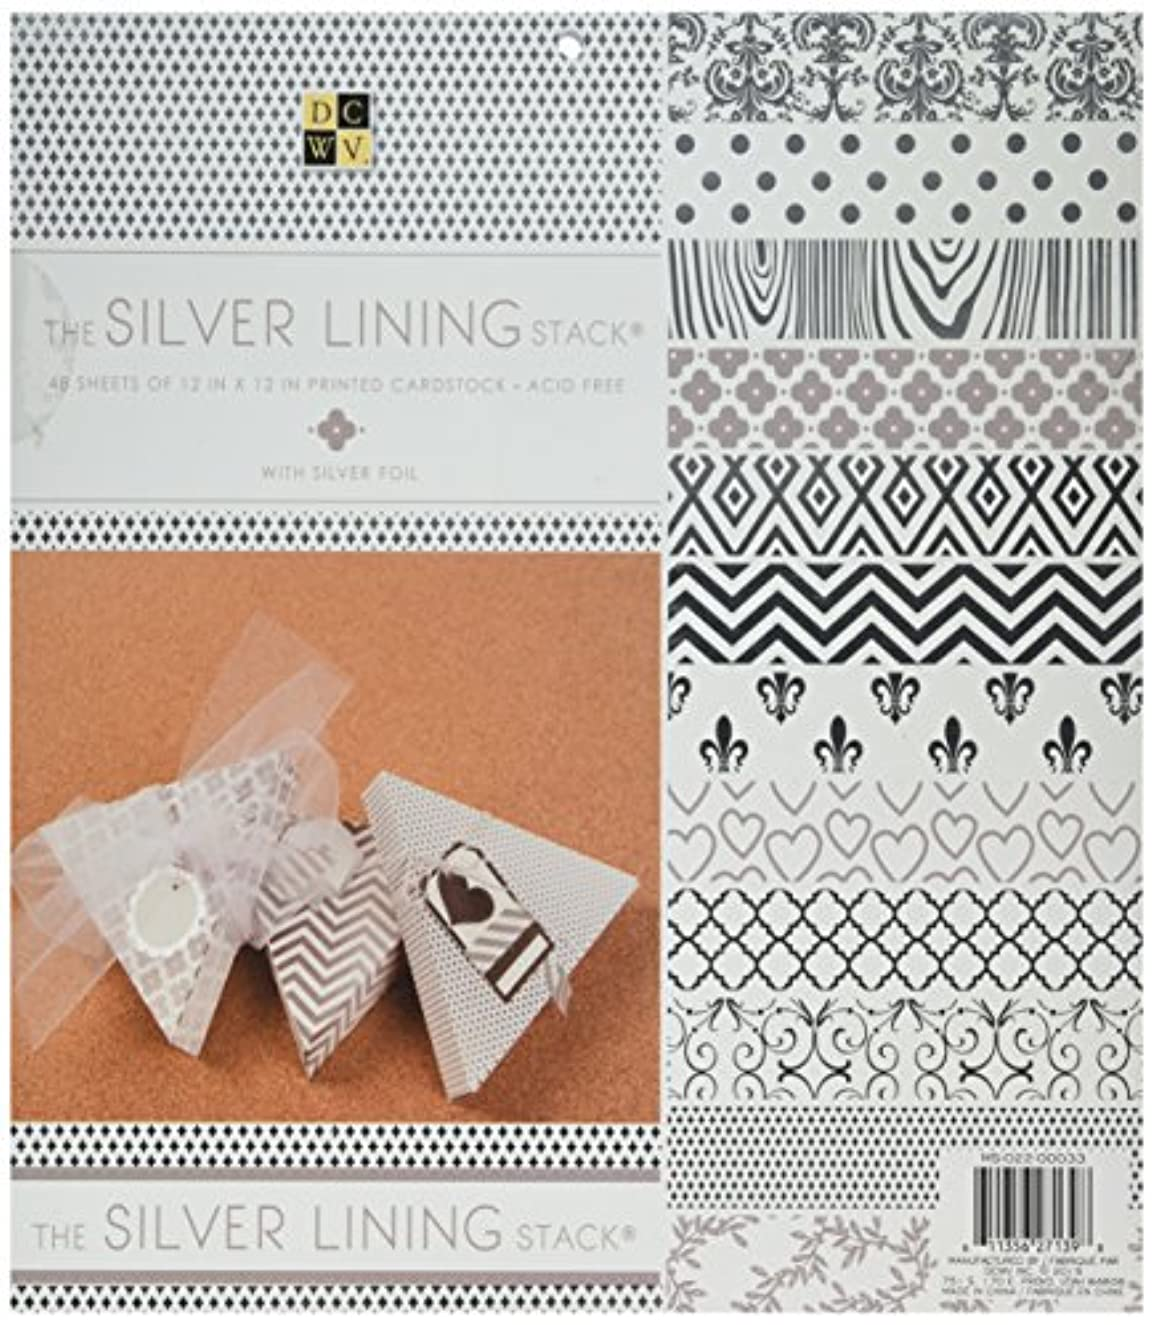 American Crafts 12 x 12 Inch Silver Lining 48 Sheets Die Cuts with a View Stacks, 12